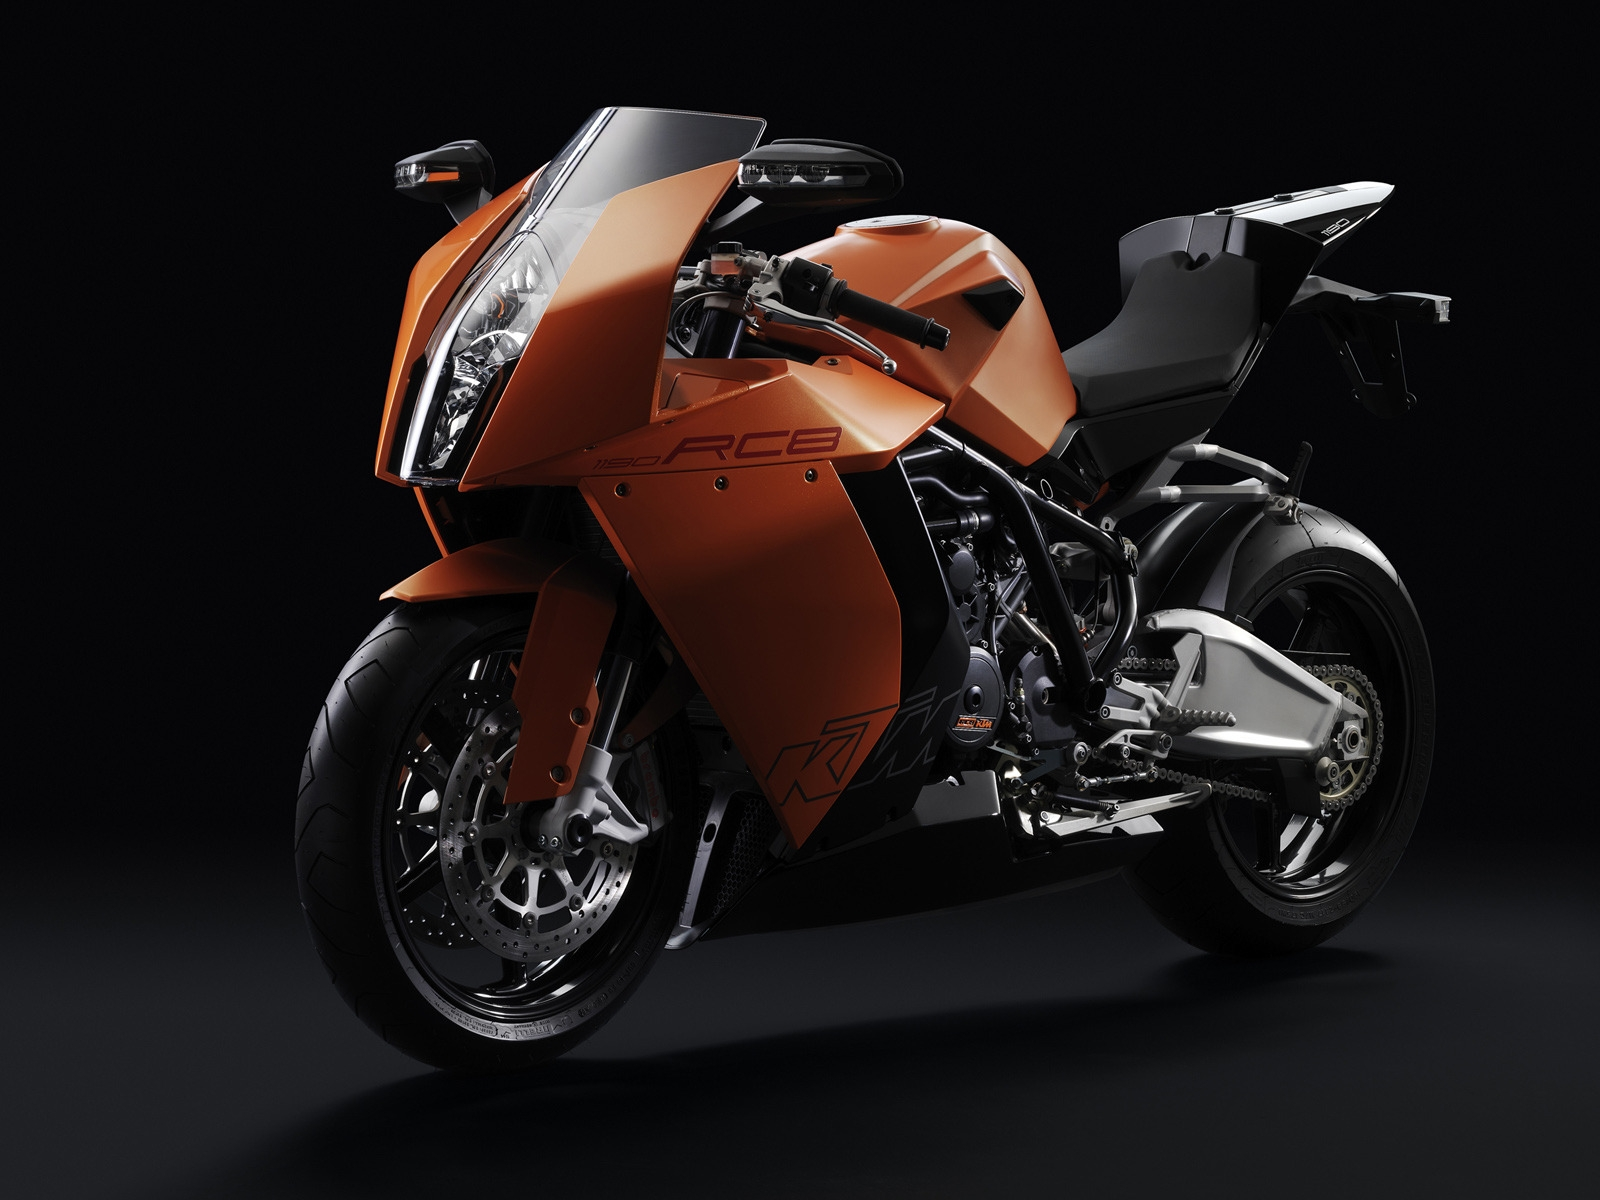 KTM 1190 RC8 for 1600 x 1200 resolution